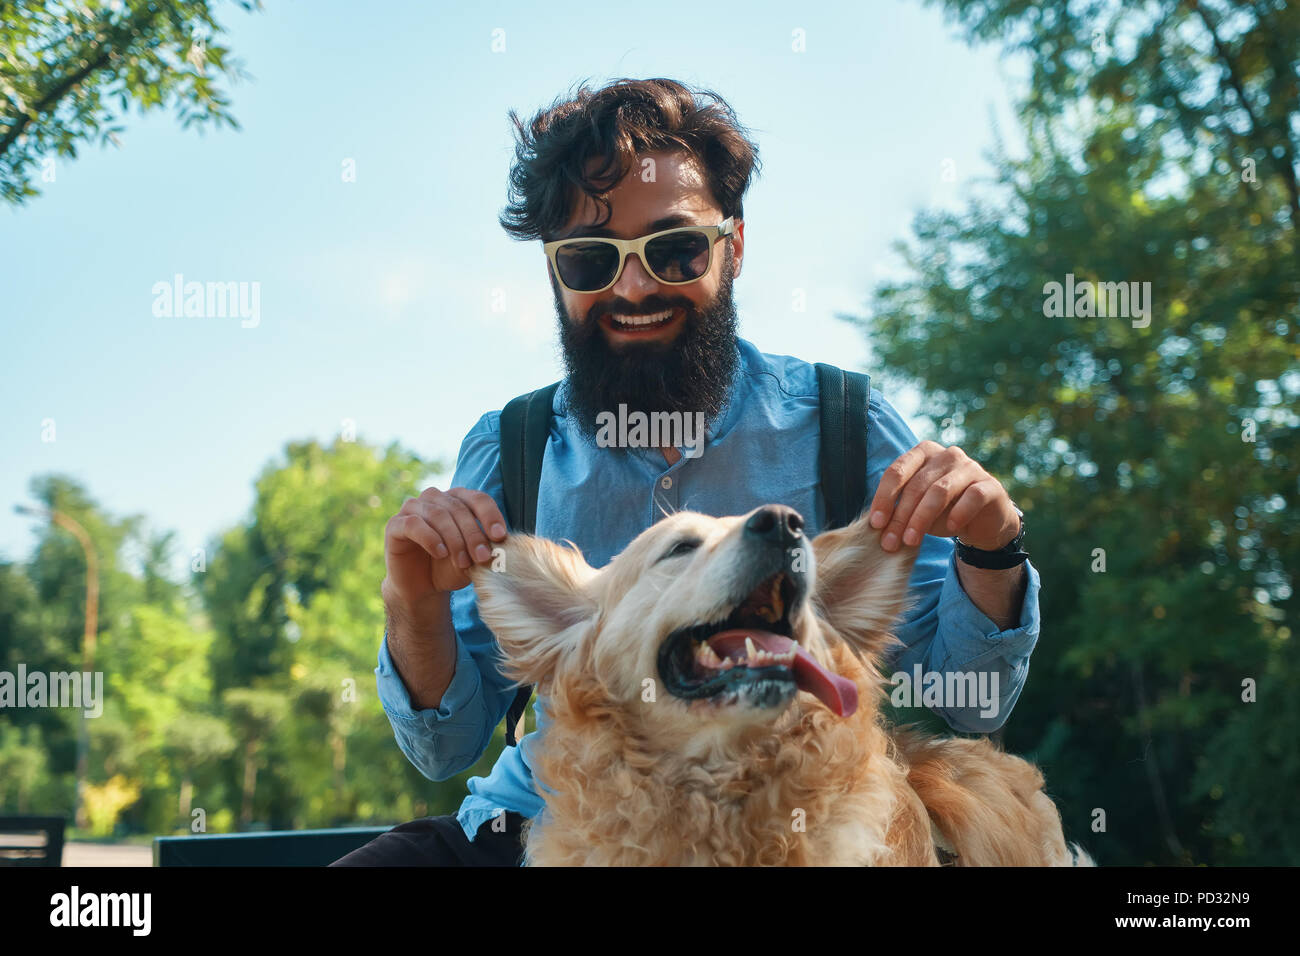 Man and dog having fun, playing, making funny faces while restin - Stock Image